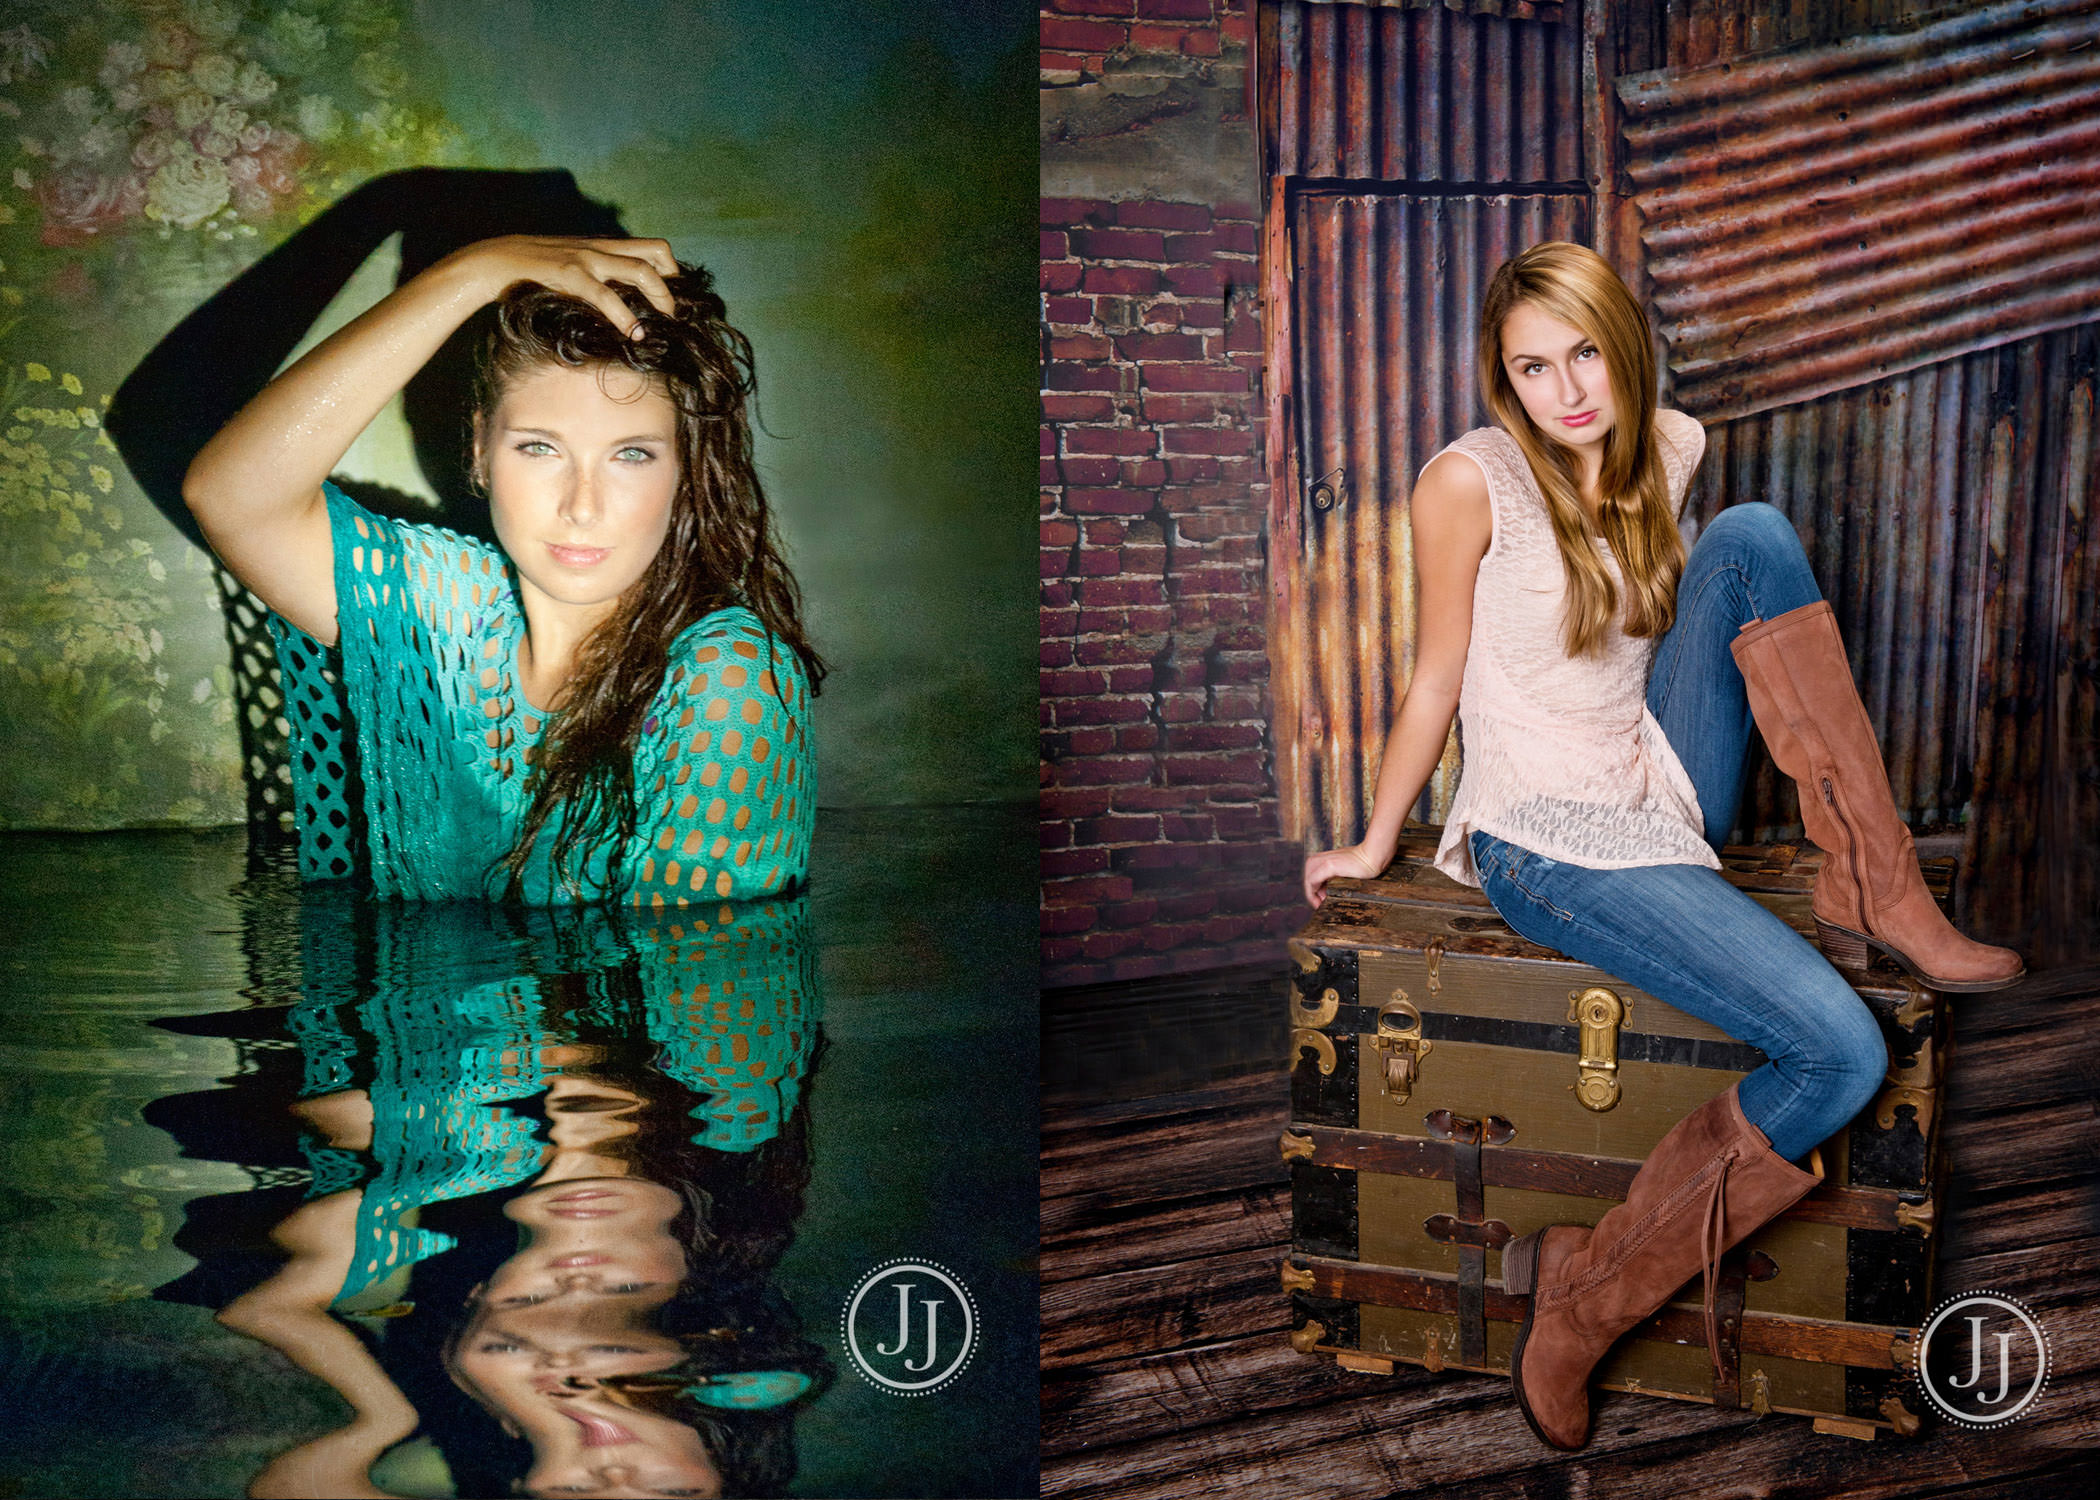 Senior Pictures - Color My World Studio - Zionsville, Indiana